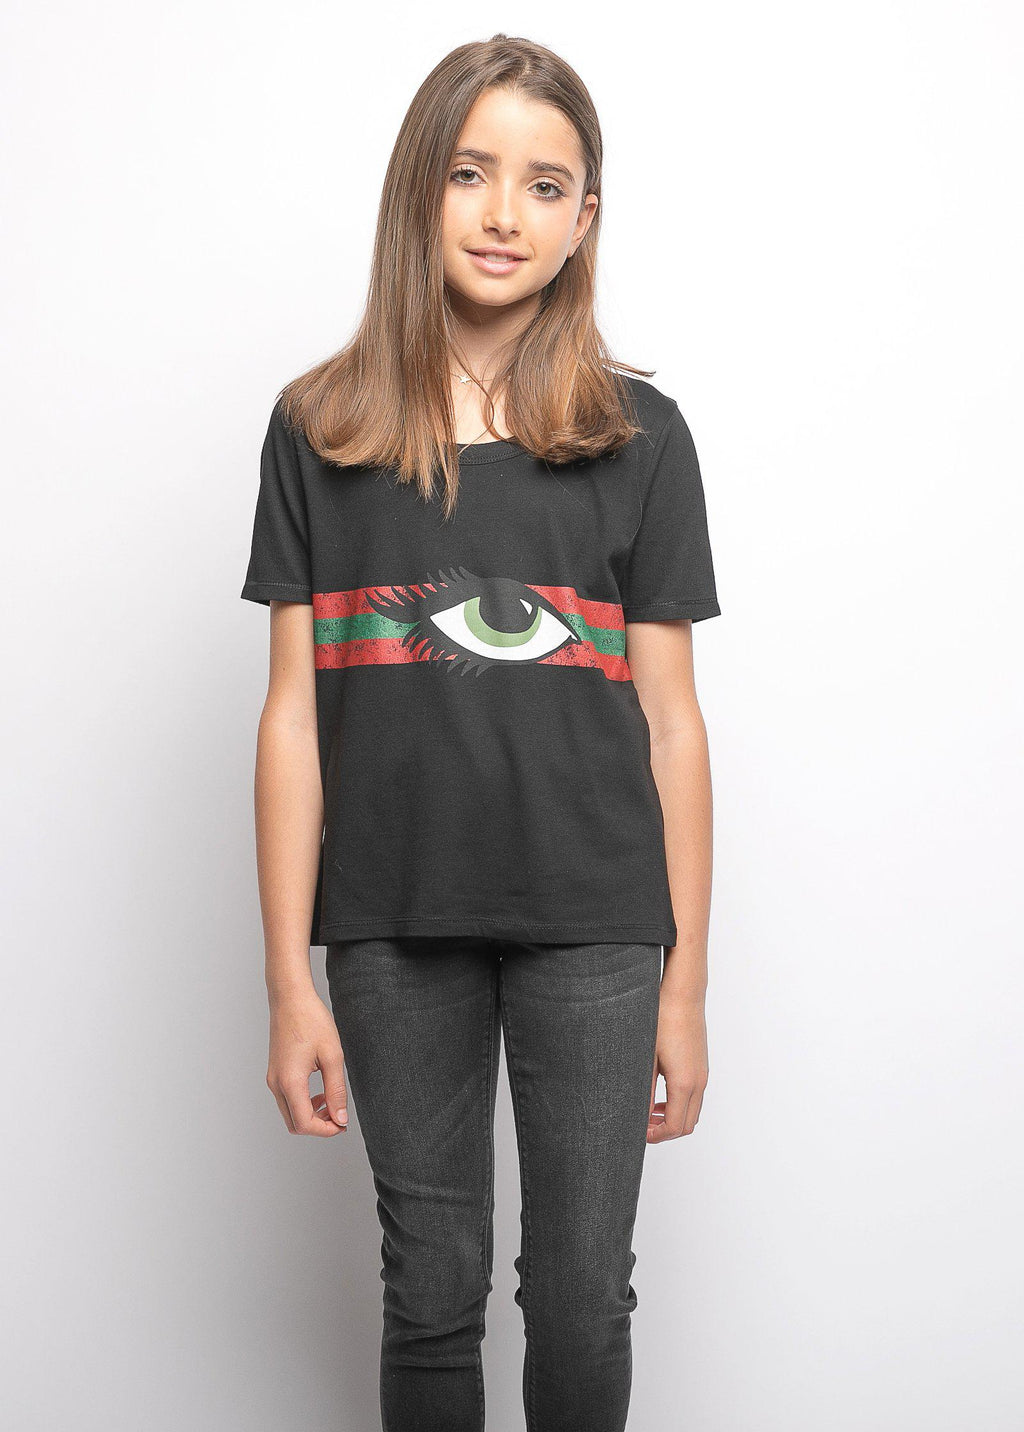 Youth Girls Black Eye Graphic T-shirt